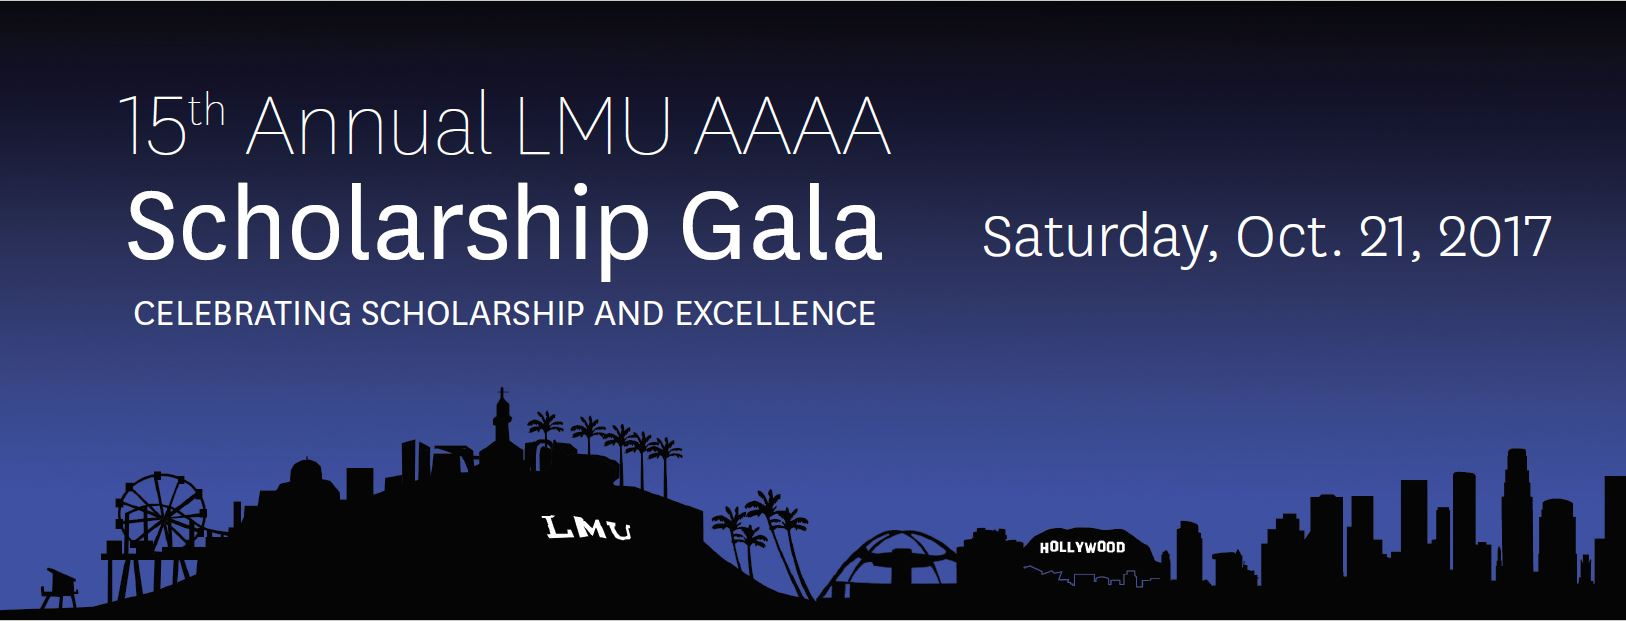 15th Annual AAAA Scholarship Gala